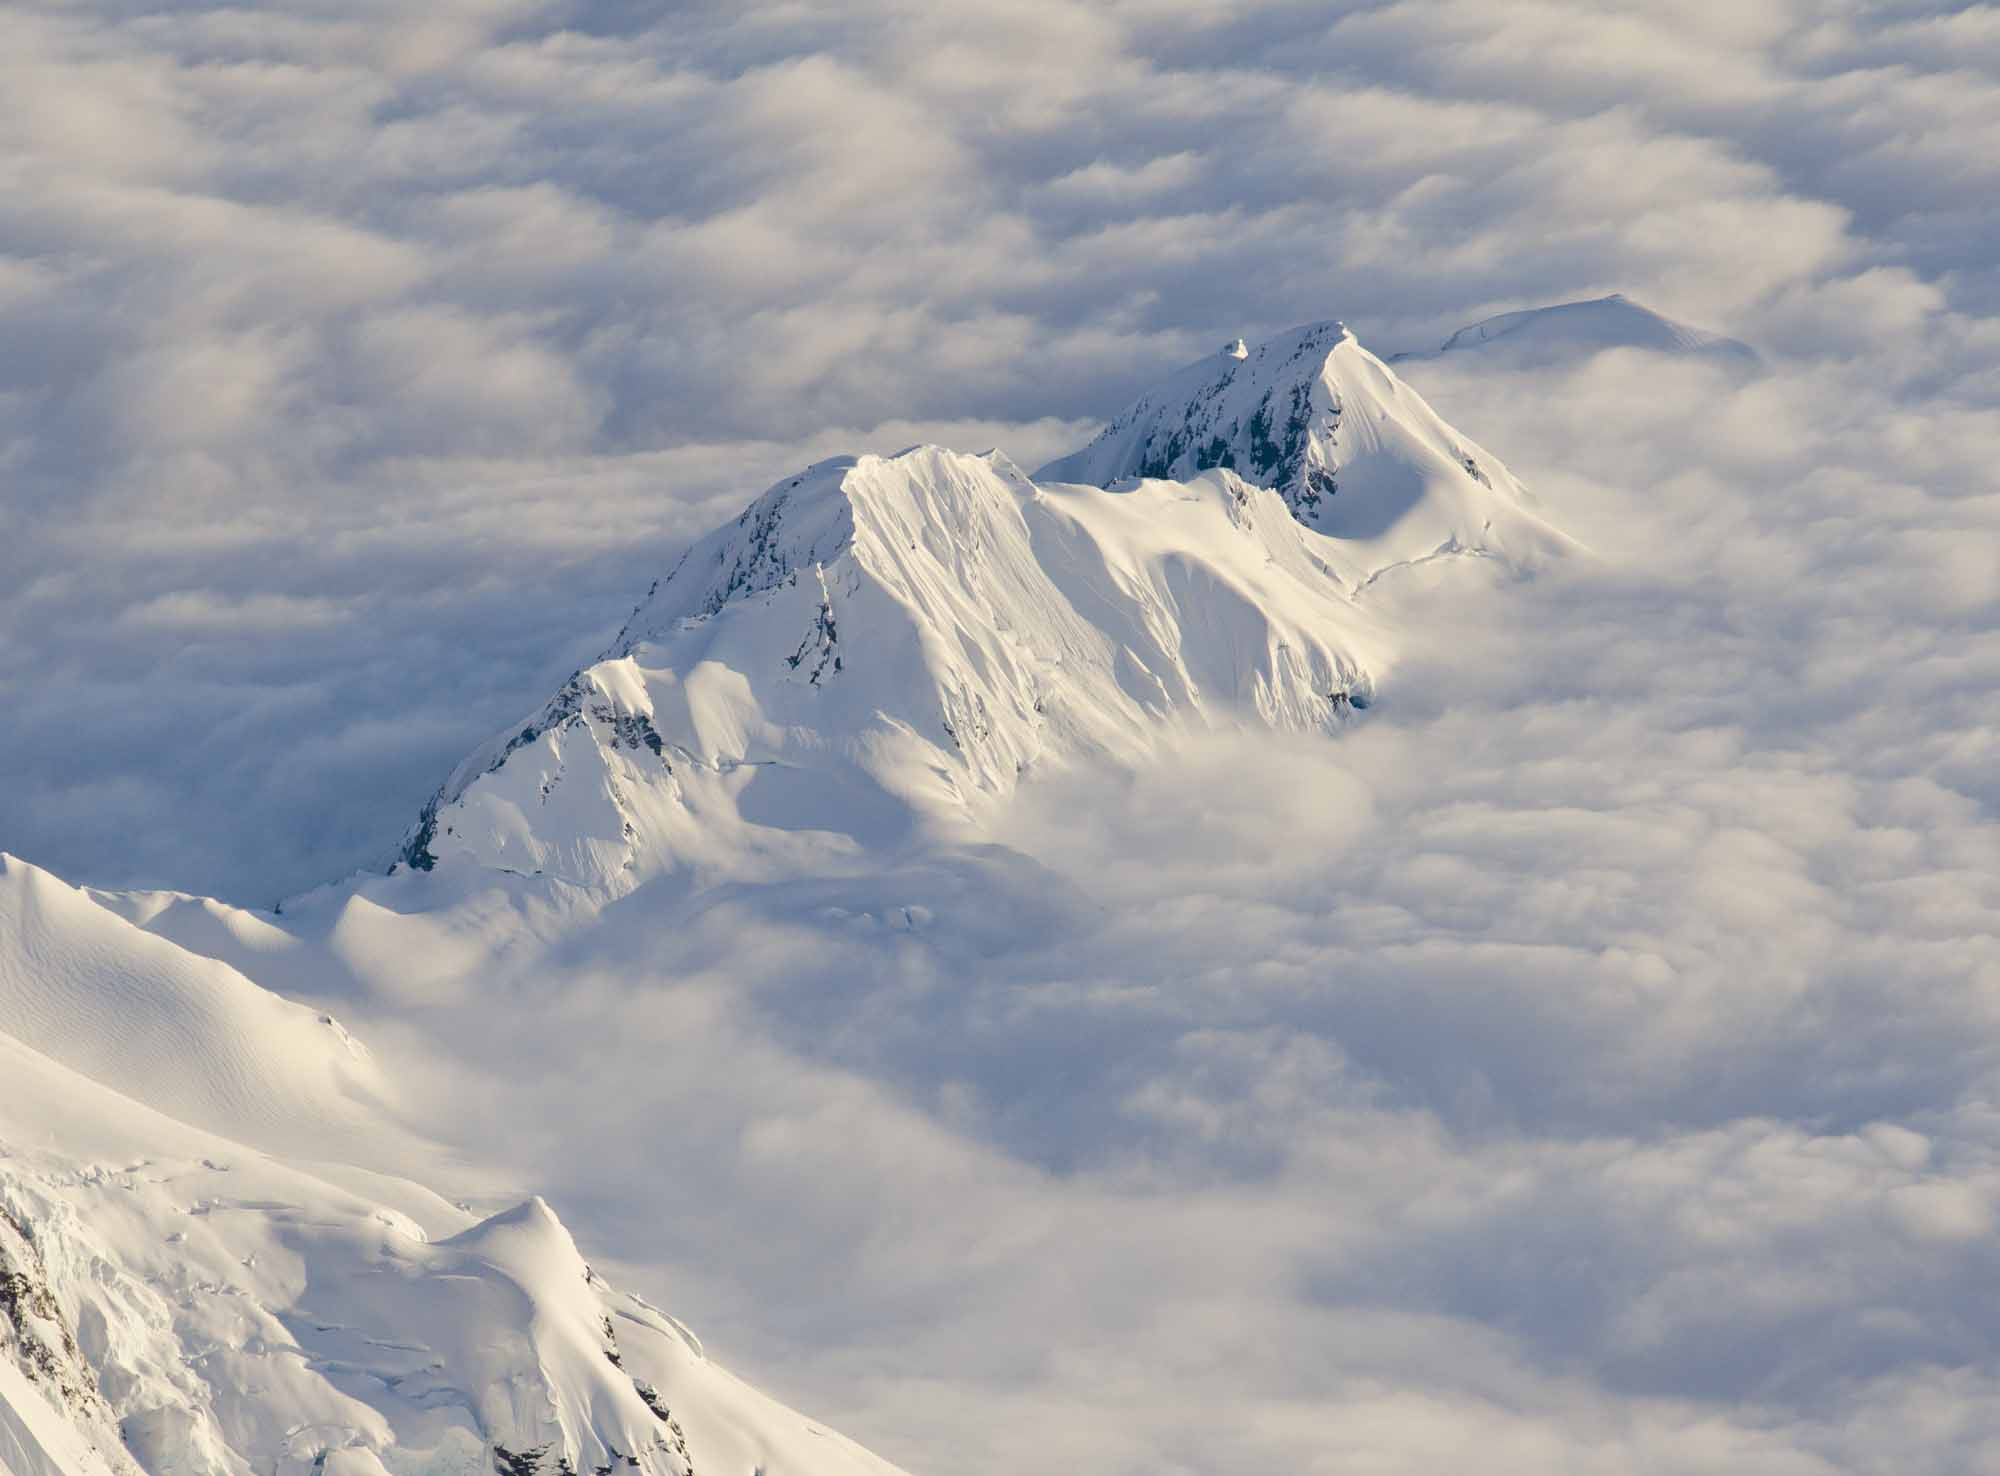 Mount-Not-So-Fairweather-clouds-photo-by-Steve-Ogle